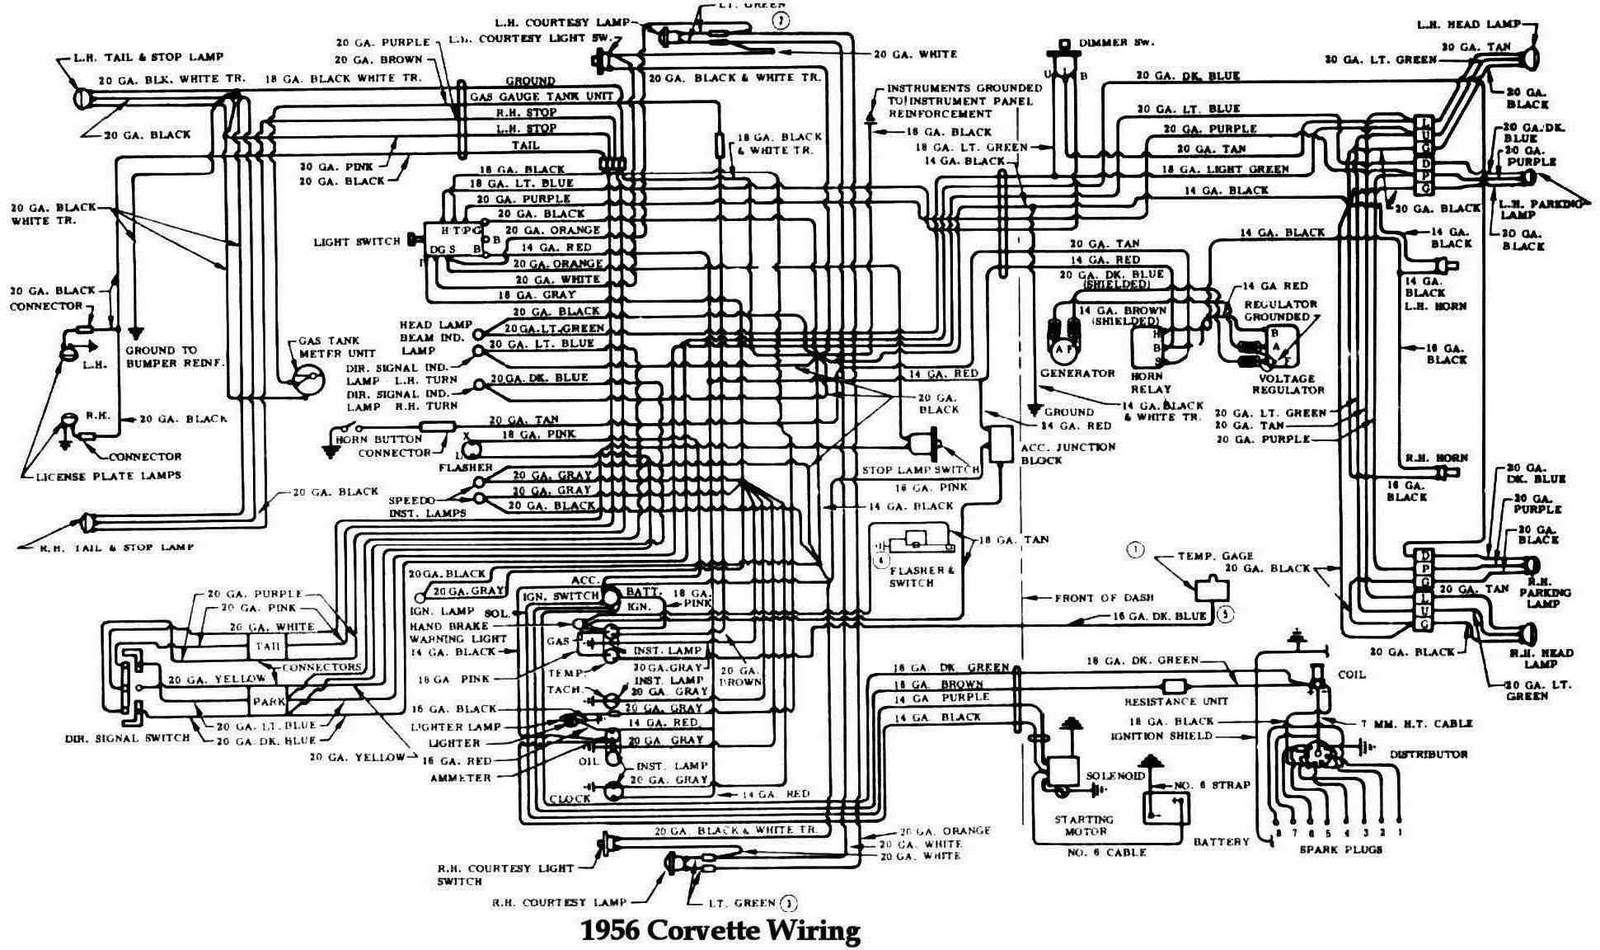 99 Corvette Wiring Diagram Diagram Base Website Wiring Diagram -  HEARTANATOMYDIAGRAM.AMICIDIRESPIGHI.ITDiagram Base Website Full Edition - amicidirespighi.it